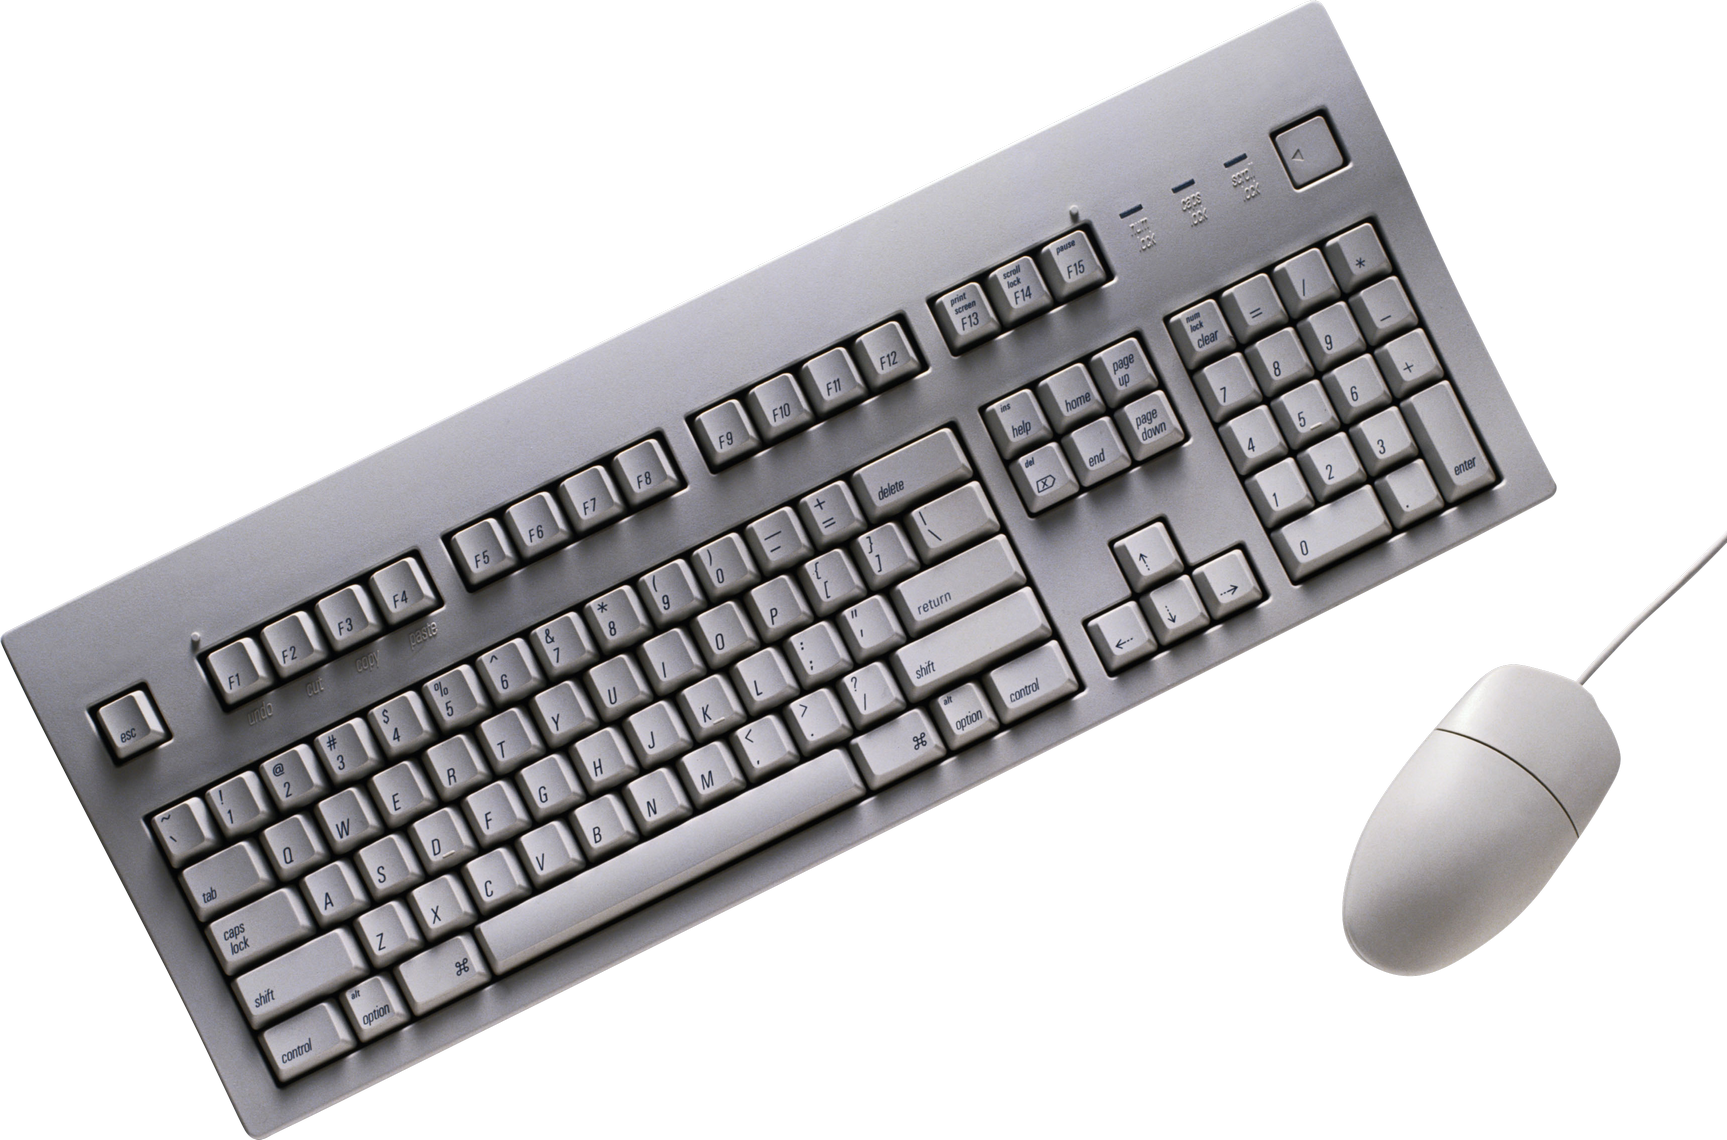 jpg freeuse stock Computer keyboard clipart black and white. Png image purepng free